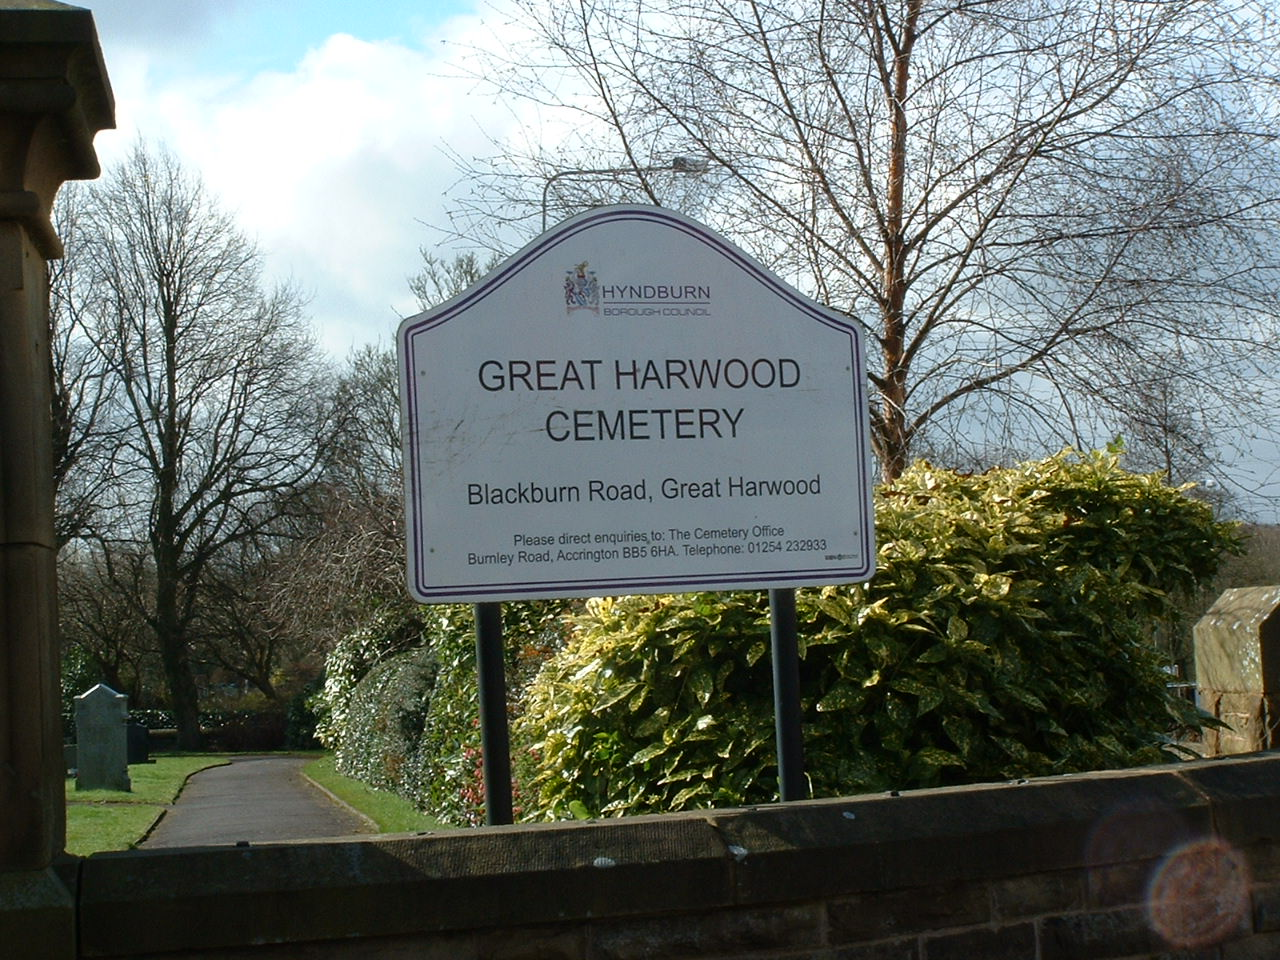 Great Harwood Cemetery